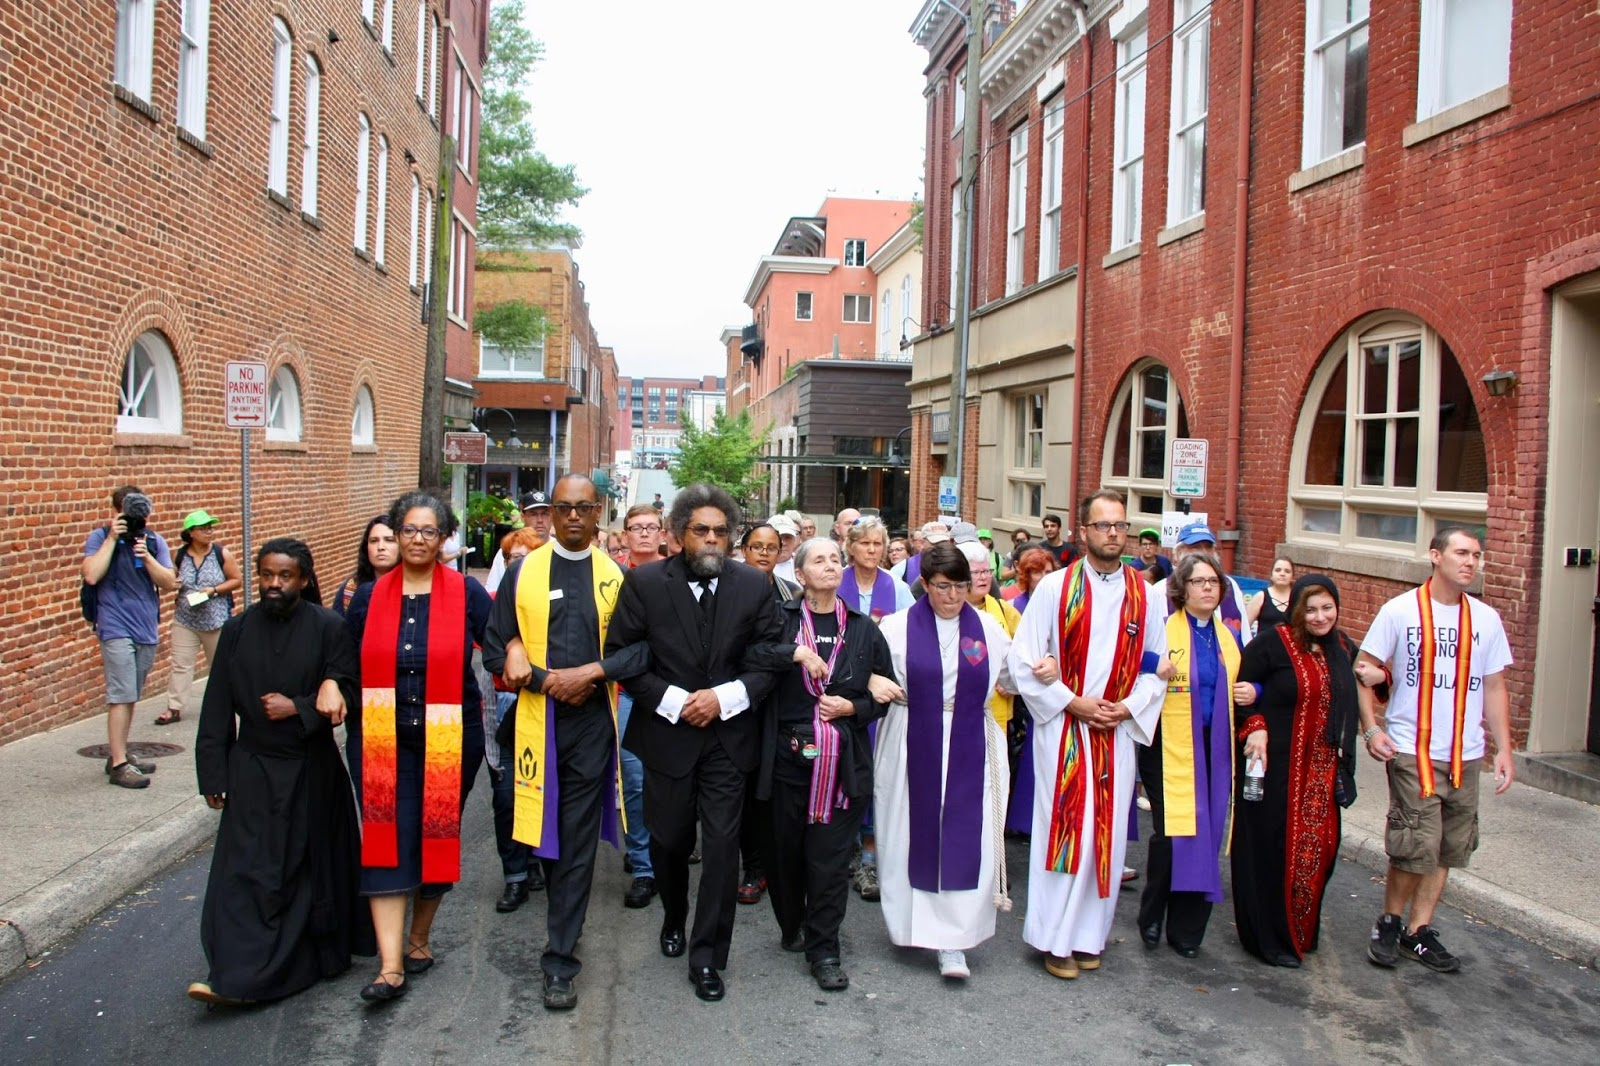 Clergy peaceful presence at the Charlottesville rallies